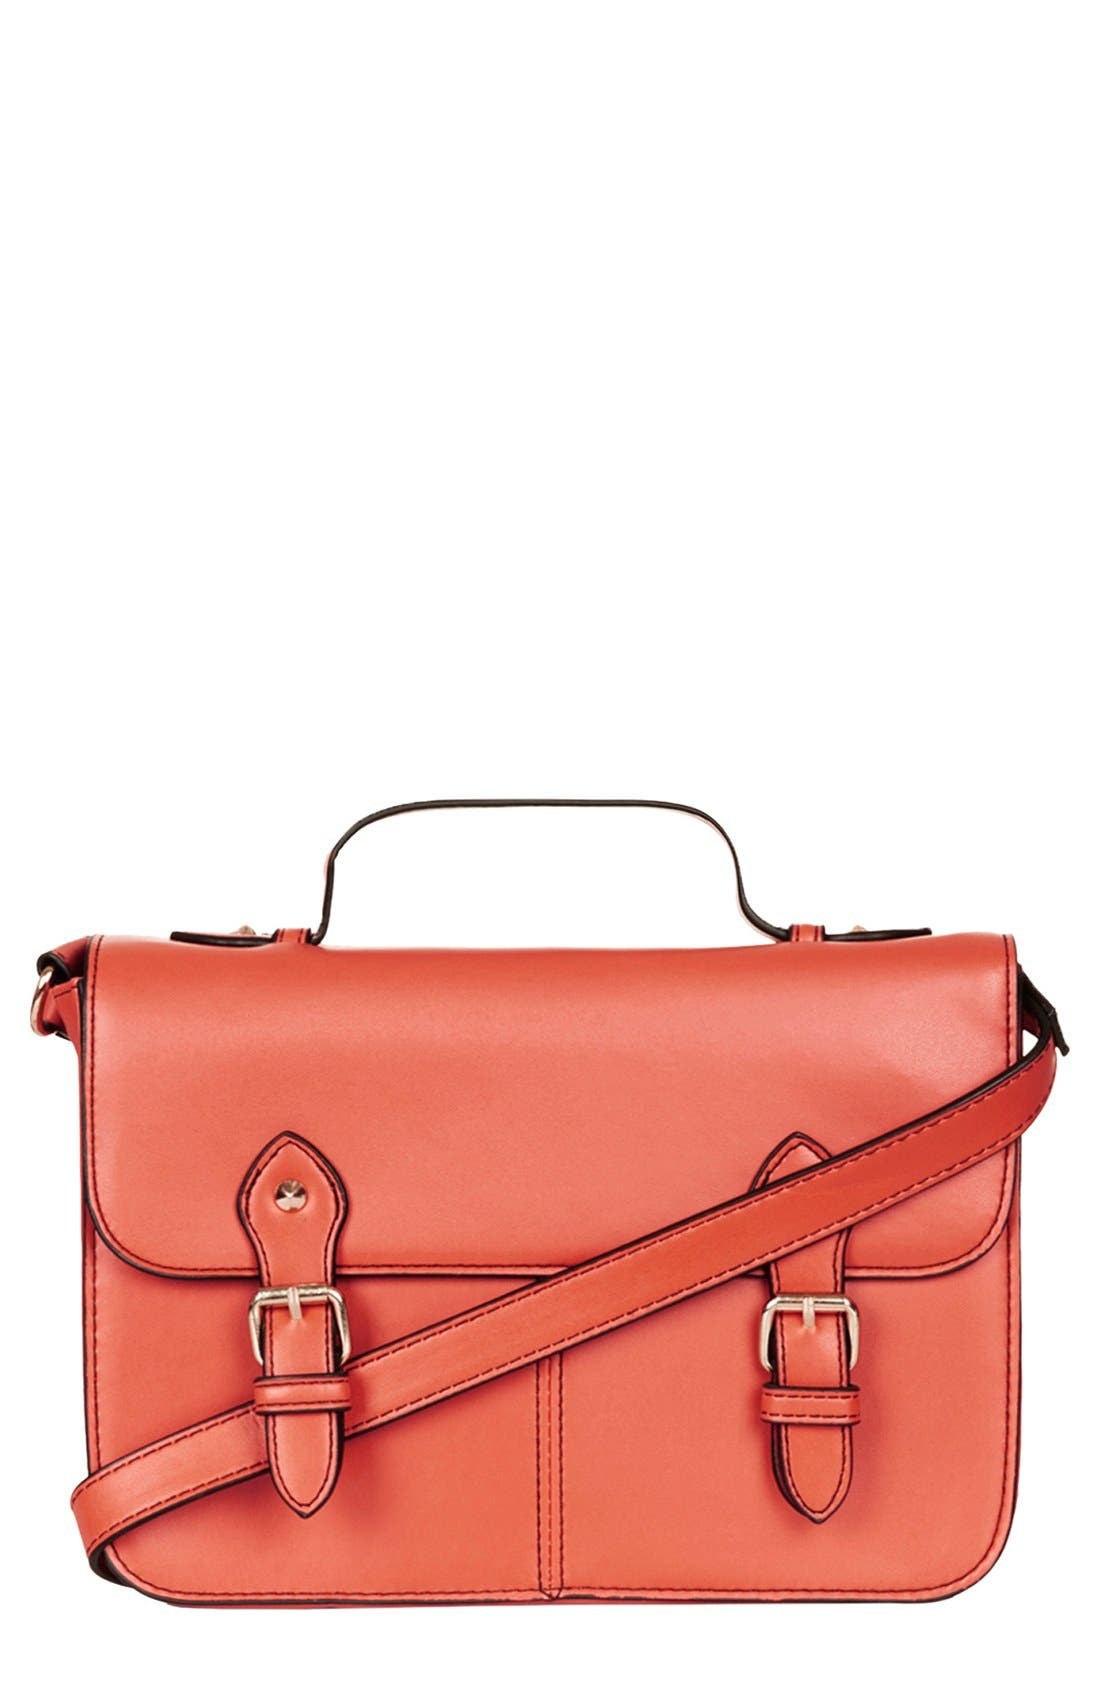 'Edge Paint' Faux Leather Satchel, Small,                             Main thumbnail 1, color,                             220